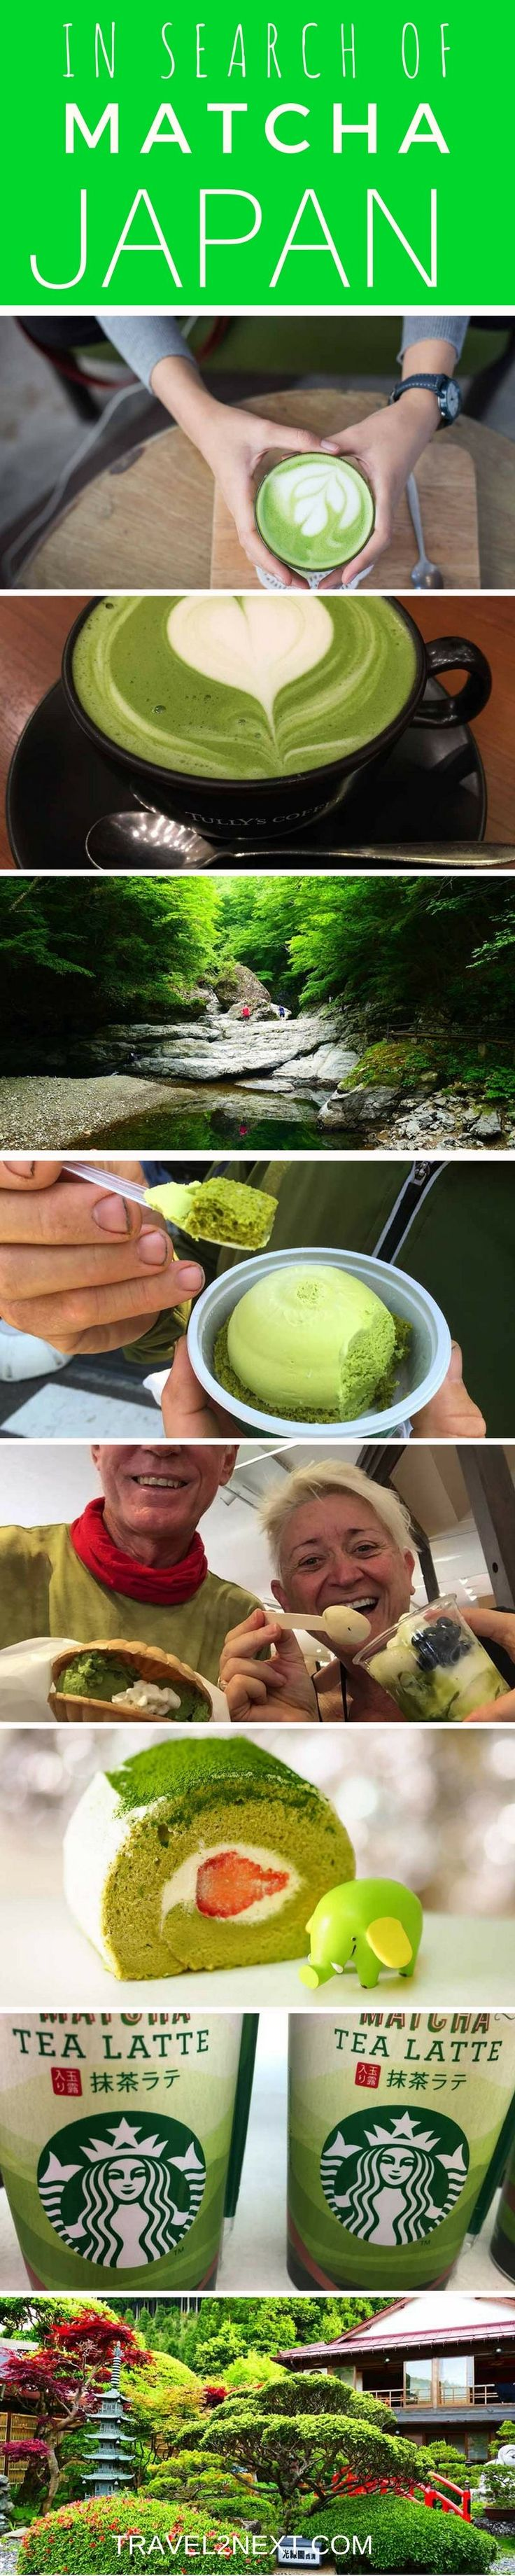 Japan Matcha Discovery. Learn about how to taste matcha  green tea and other matcha food in Japan.